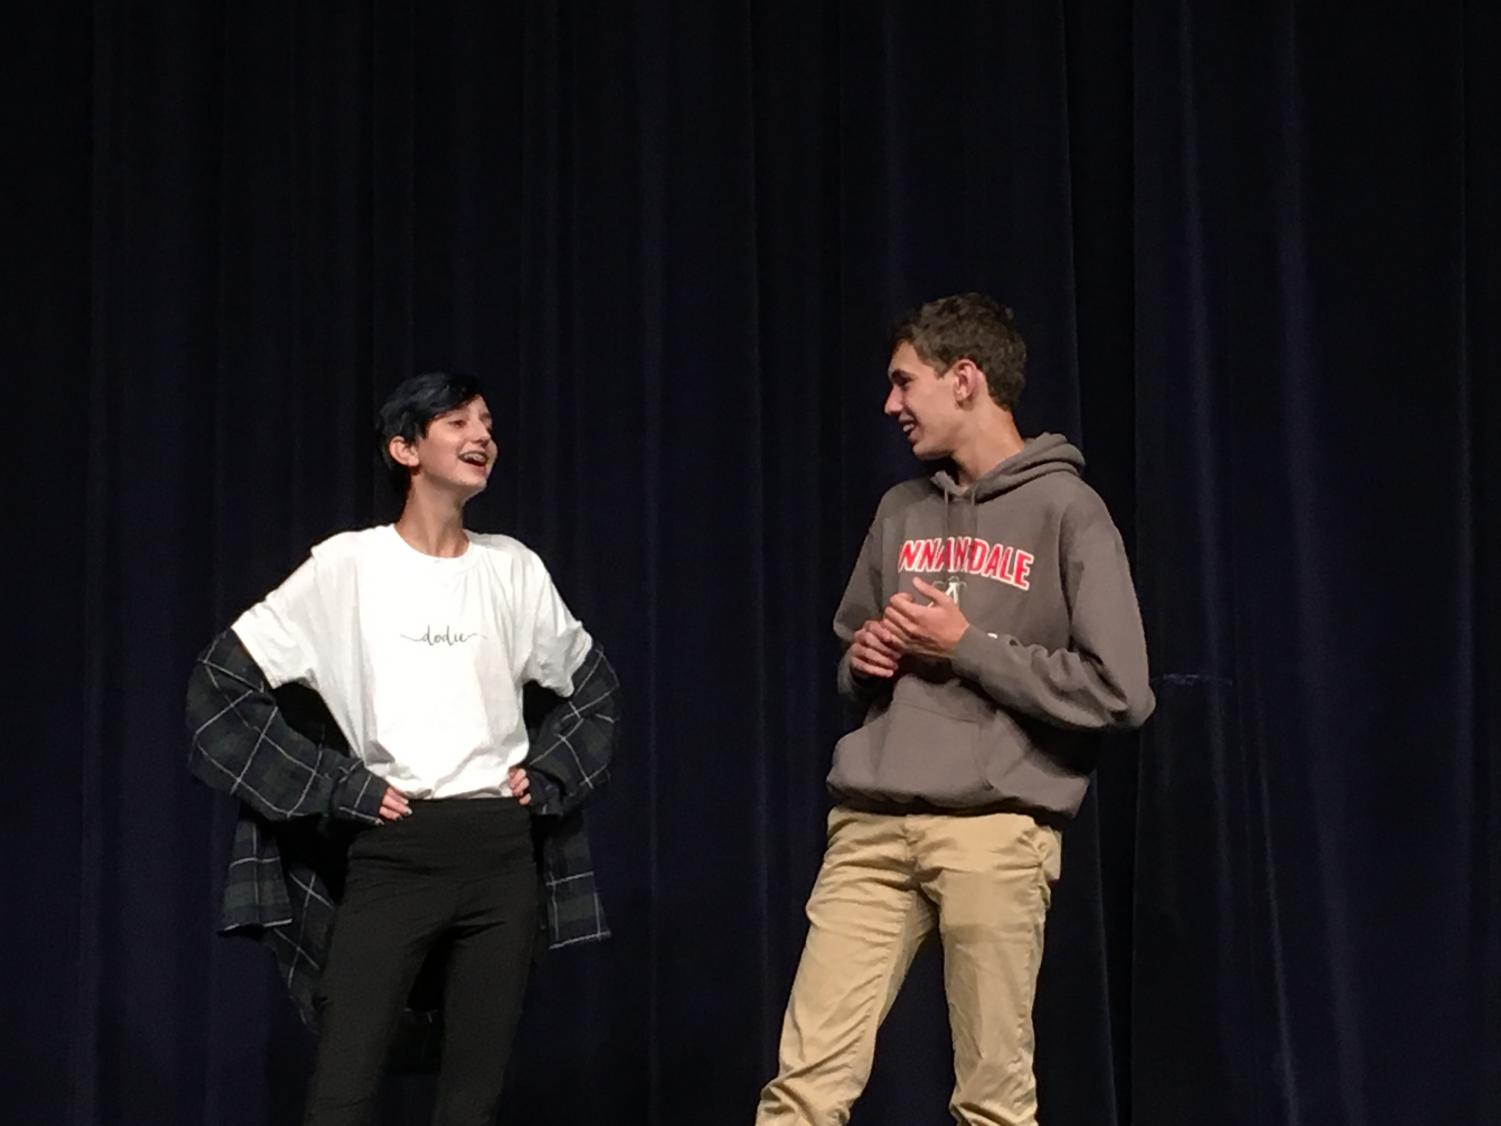 Joe Courtney (Right) and Hunter Duggan (Left) participate in an improv scene.